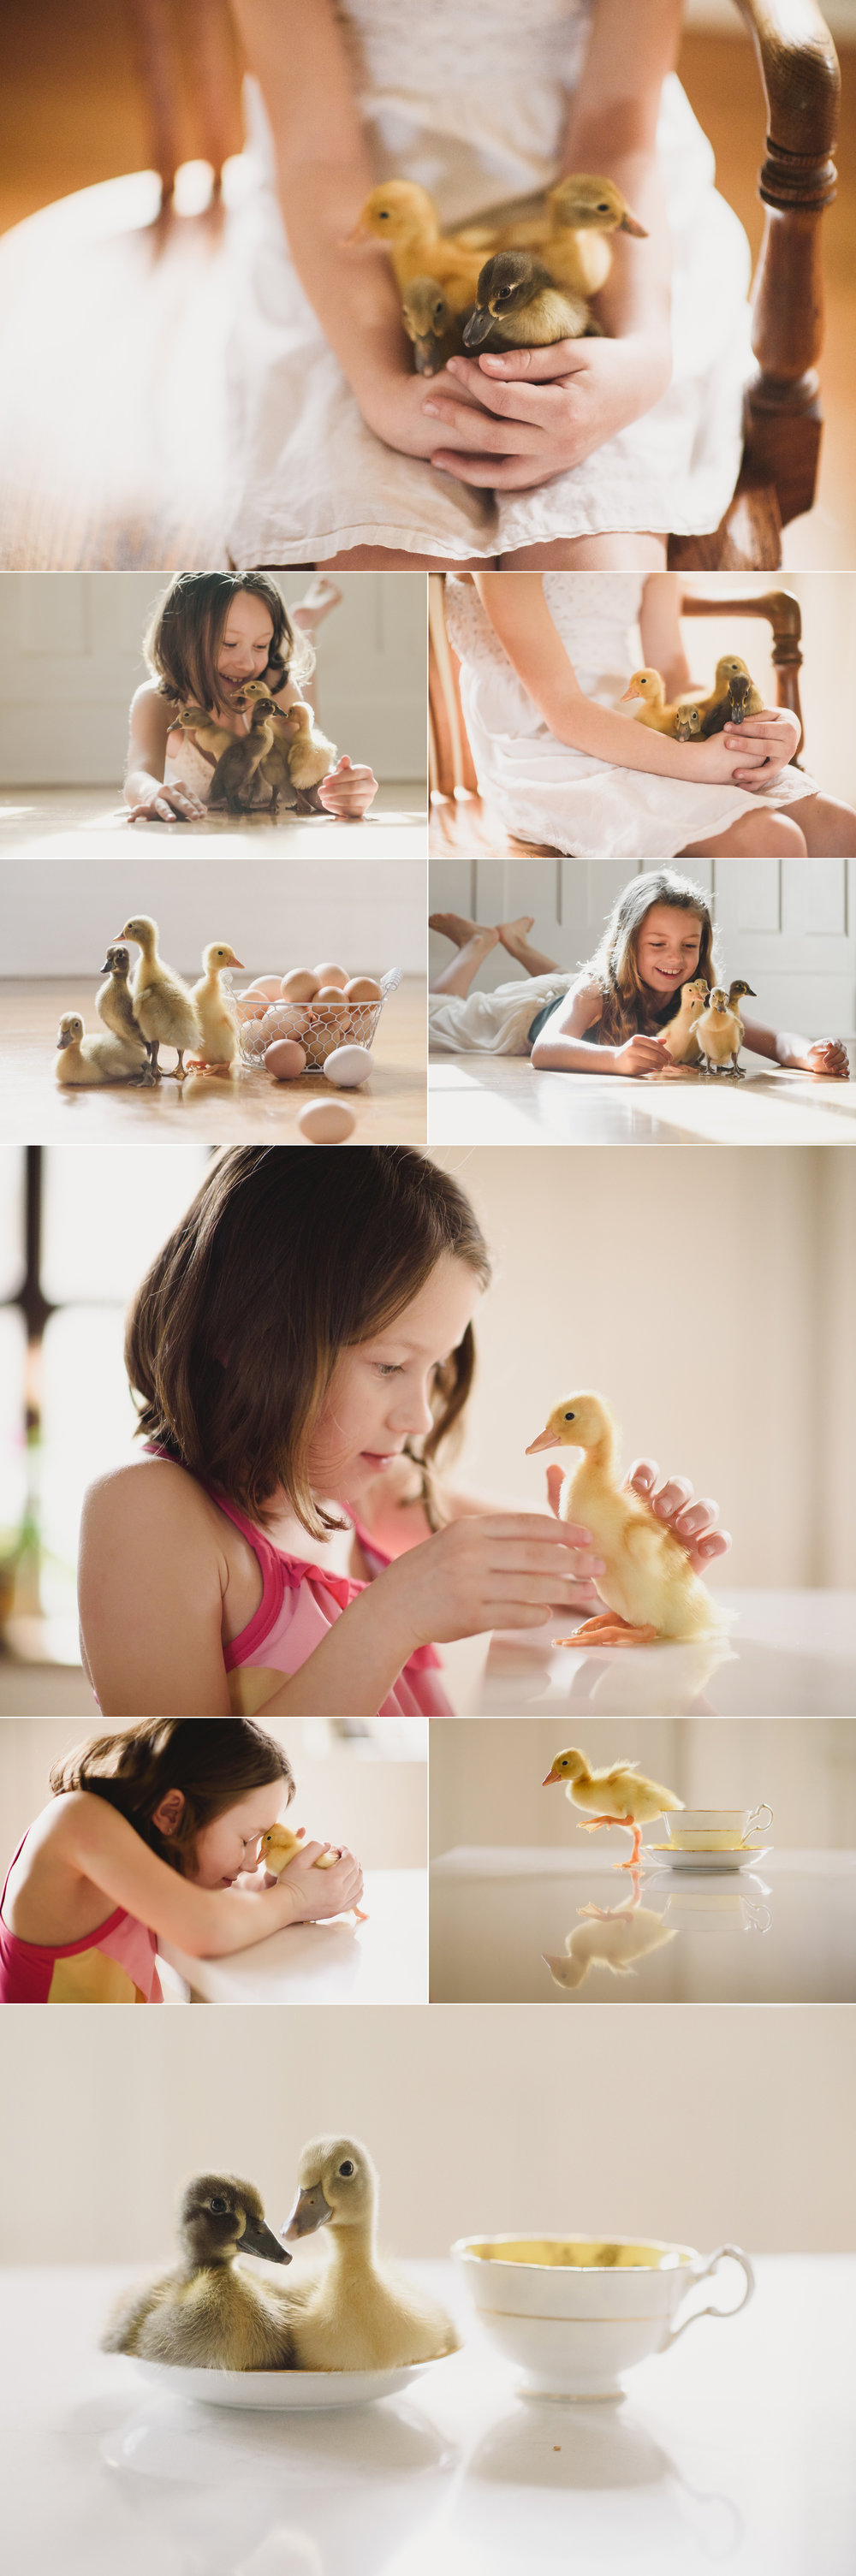 ducklings and kids